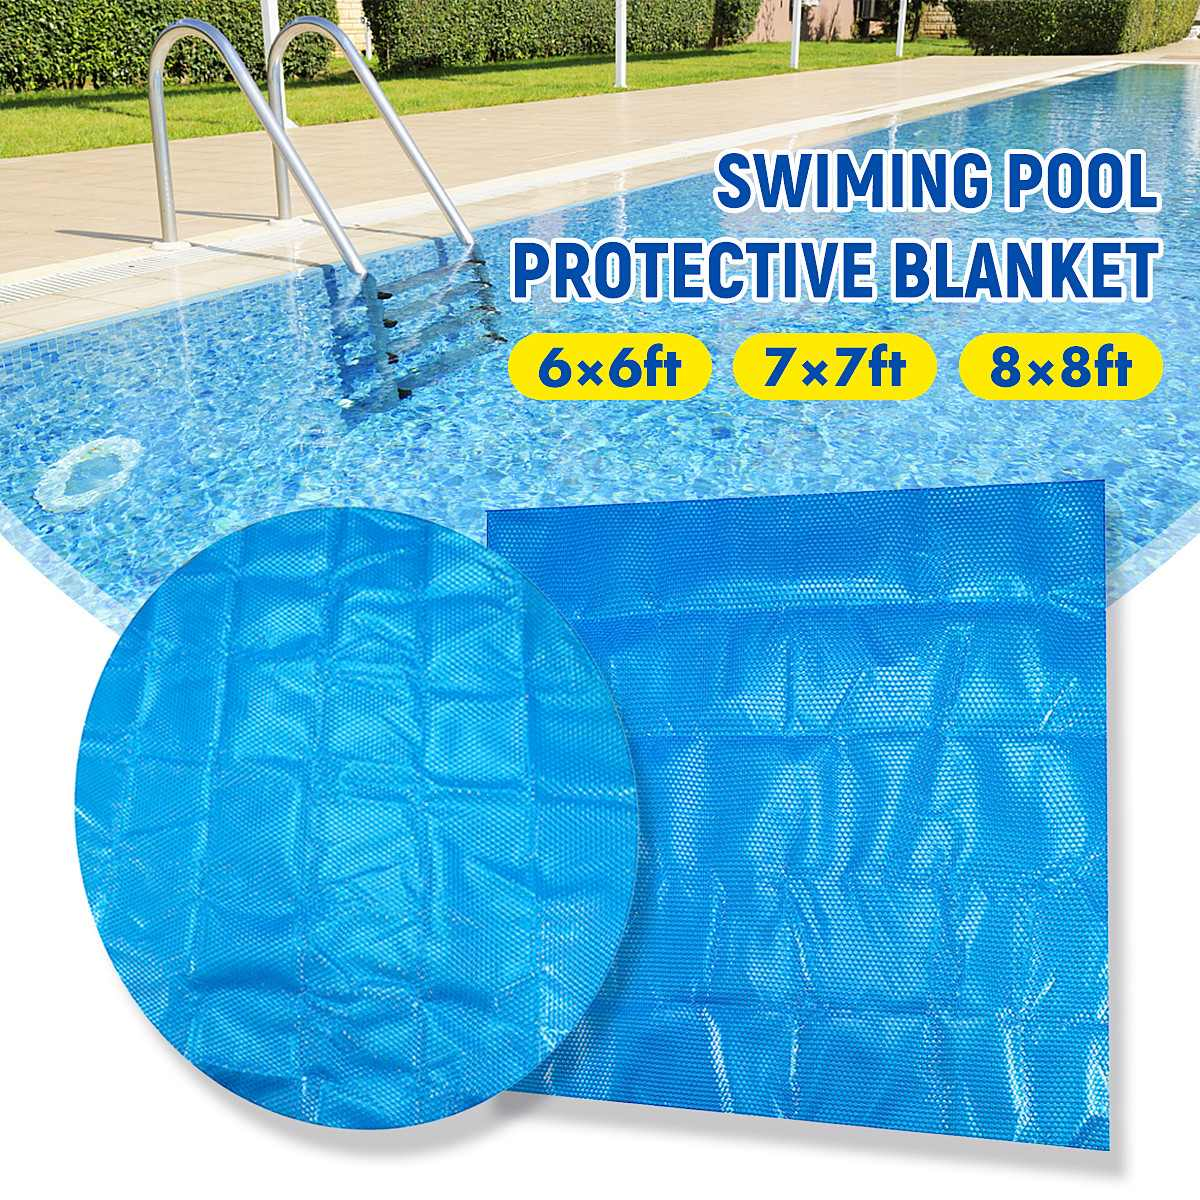 Newest Pool Cover 1.8*1.8m/2.1x2.1m/2.4x2.4m  Square/Round Solar Swimming Pool Tub Cover 400m Outdoor Bubble Blanket Accessories